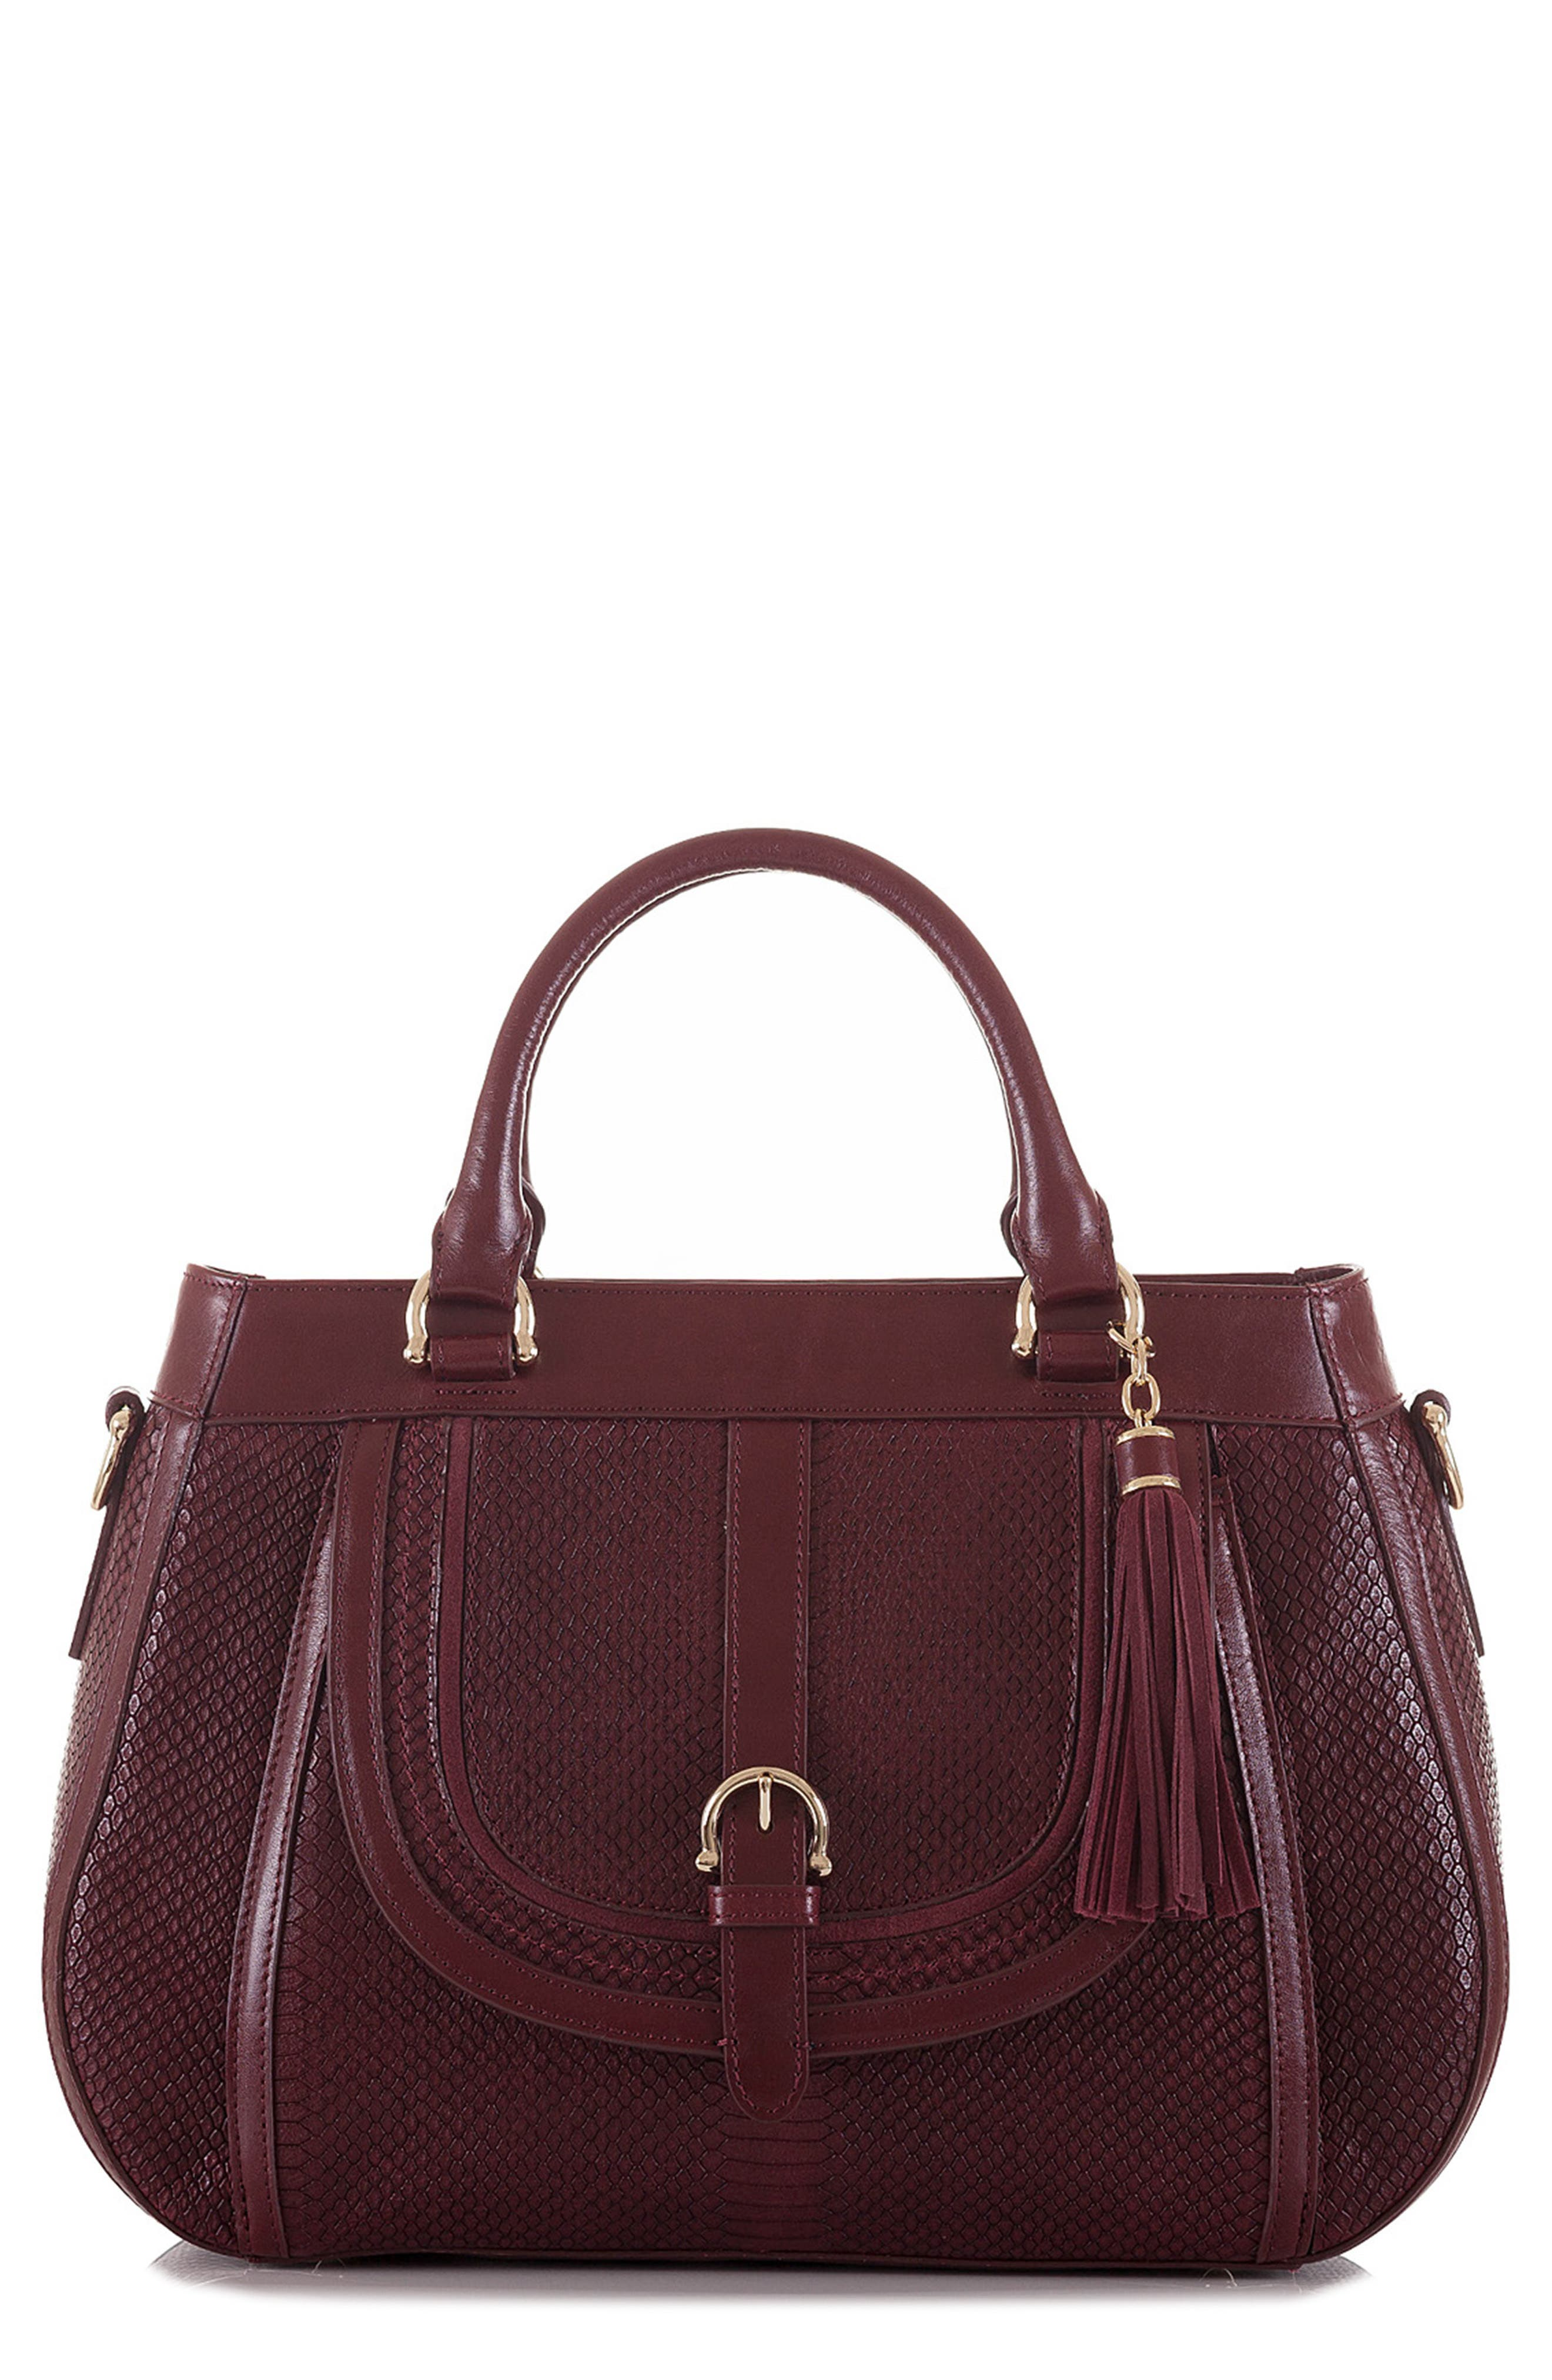 Raelynn Embossed Leather Satchel,                         Main,                         color, 932